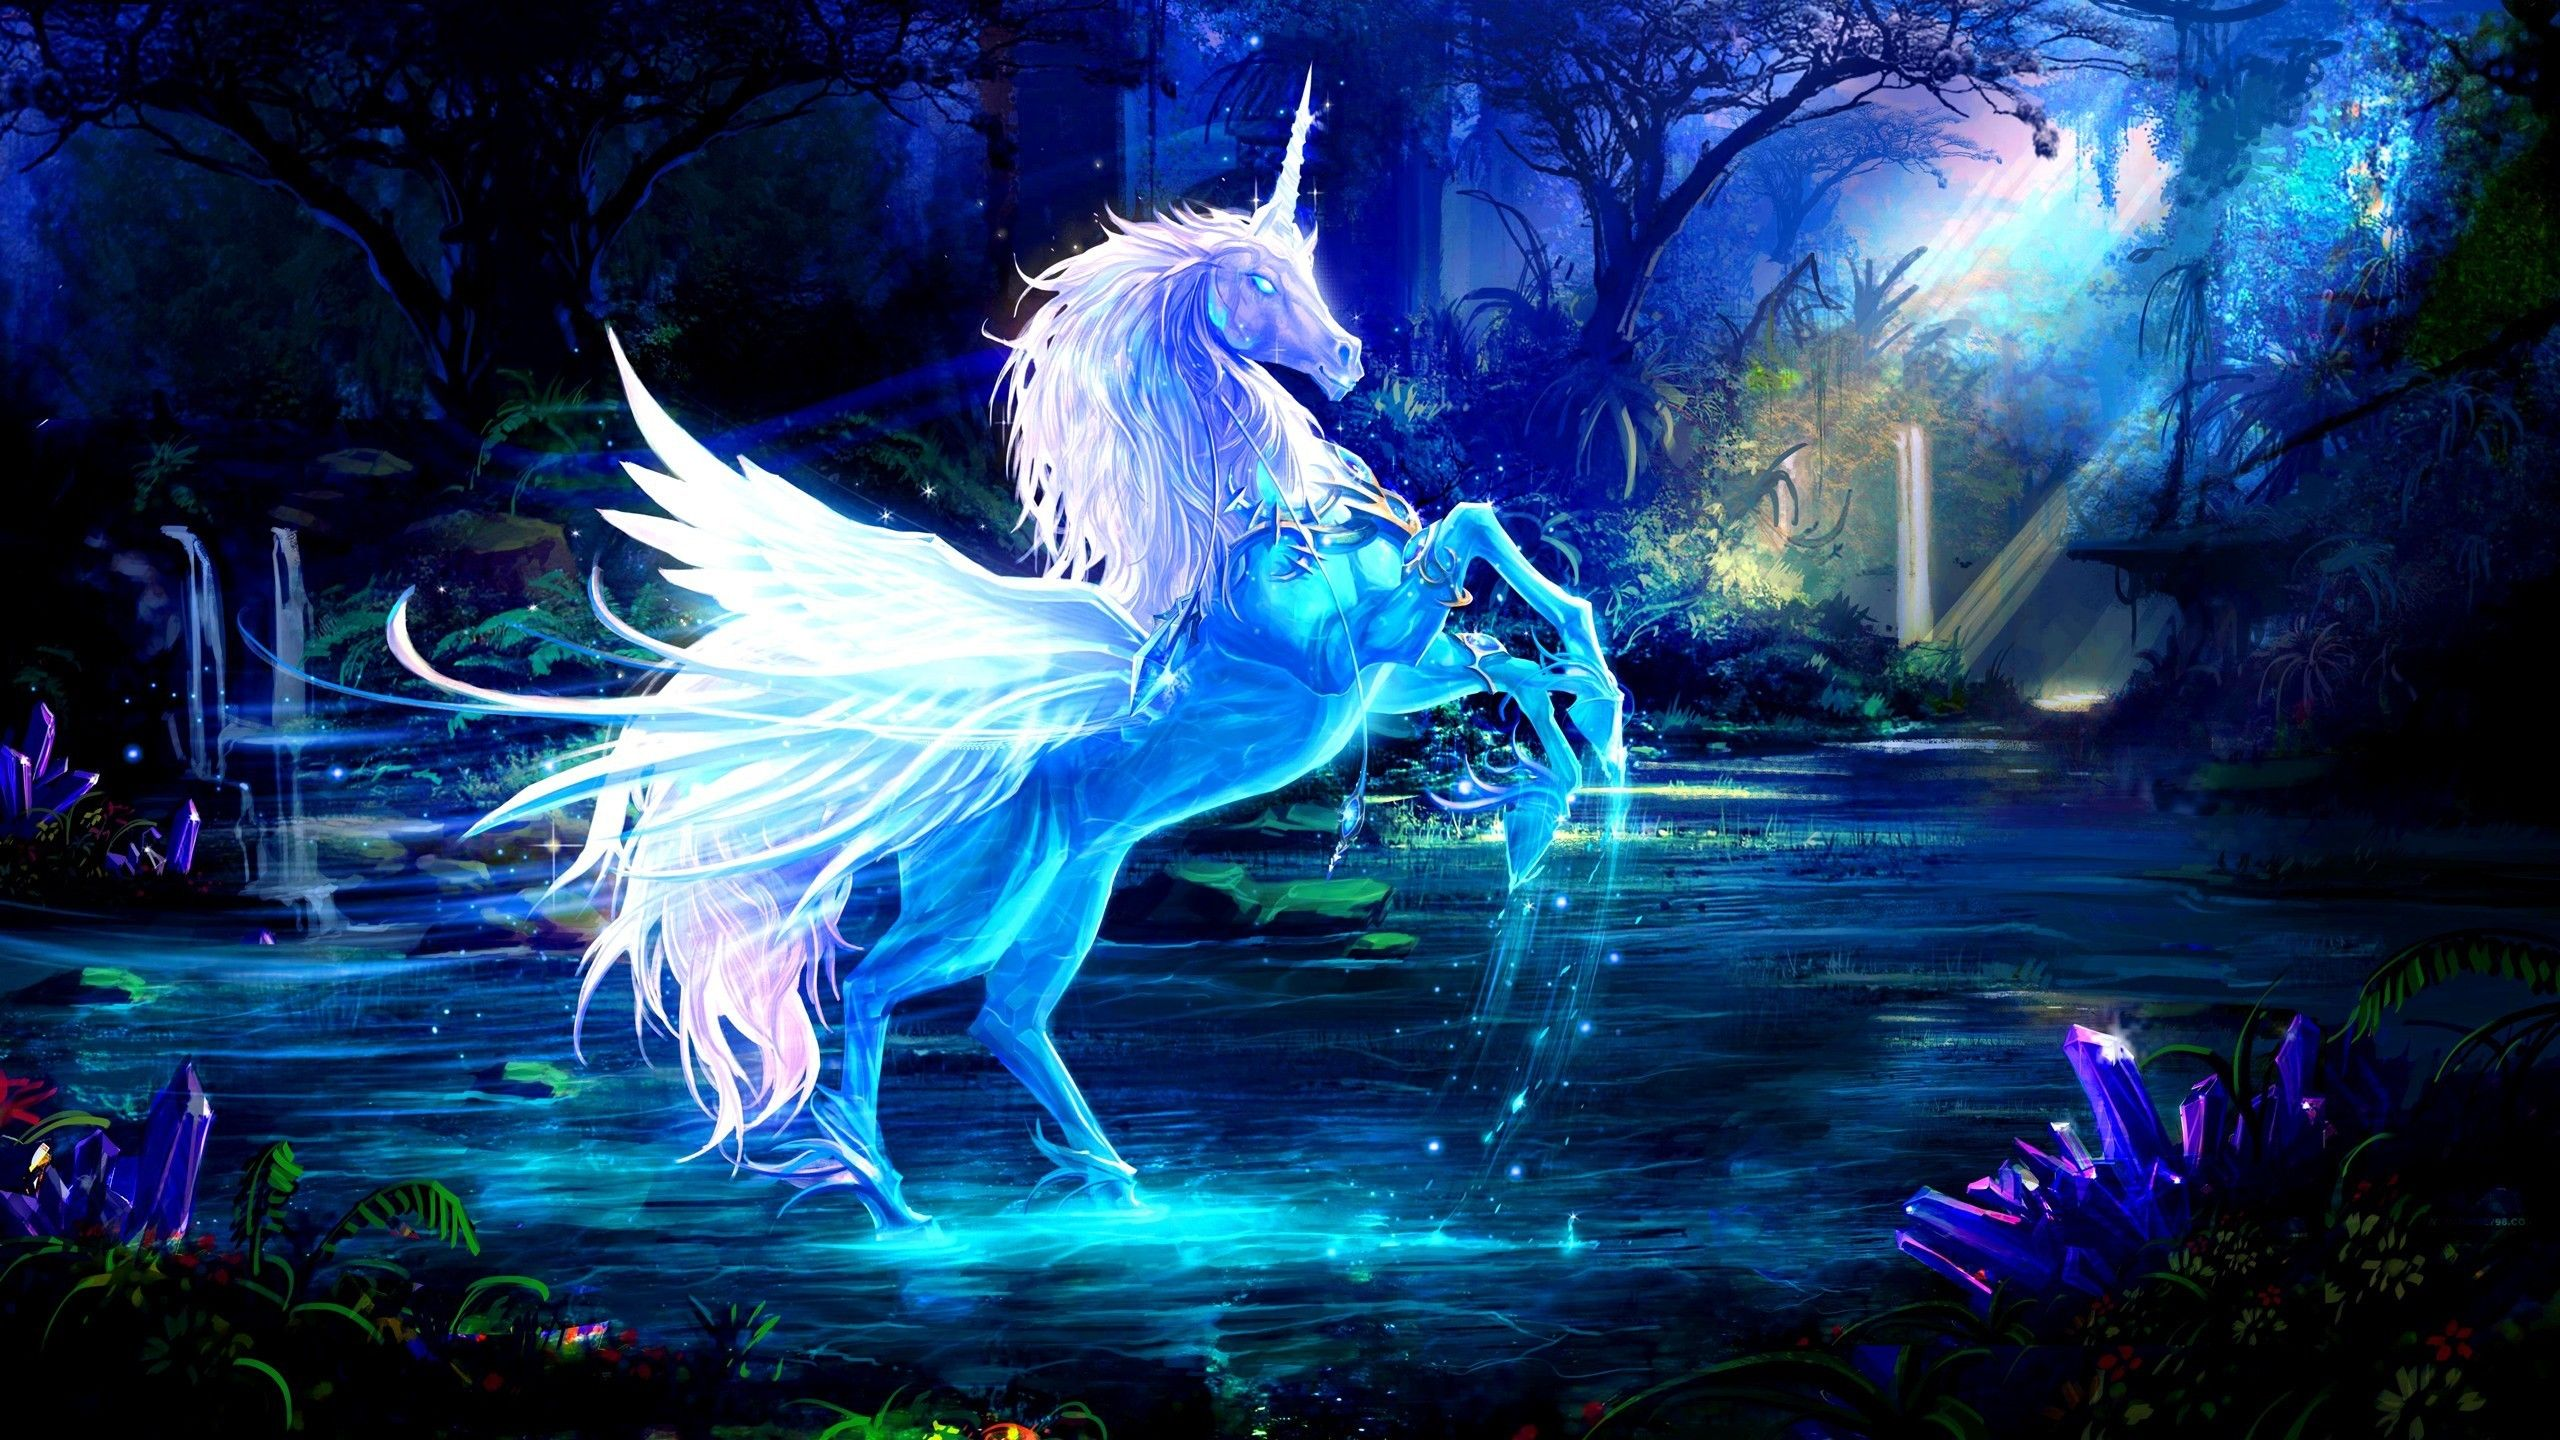 Download Wallpaper Horse Water - 18376eab826c28a9a65d19c957f4ac3a  Collection_142279.jpg